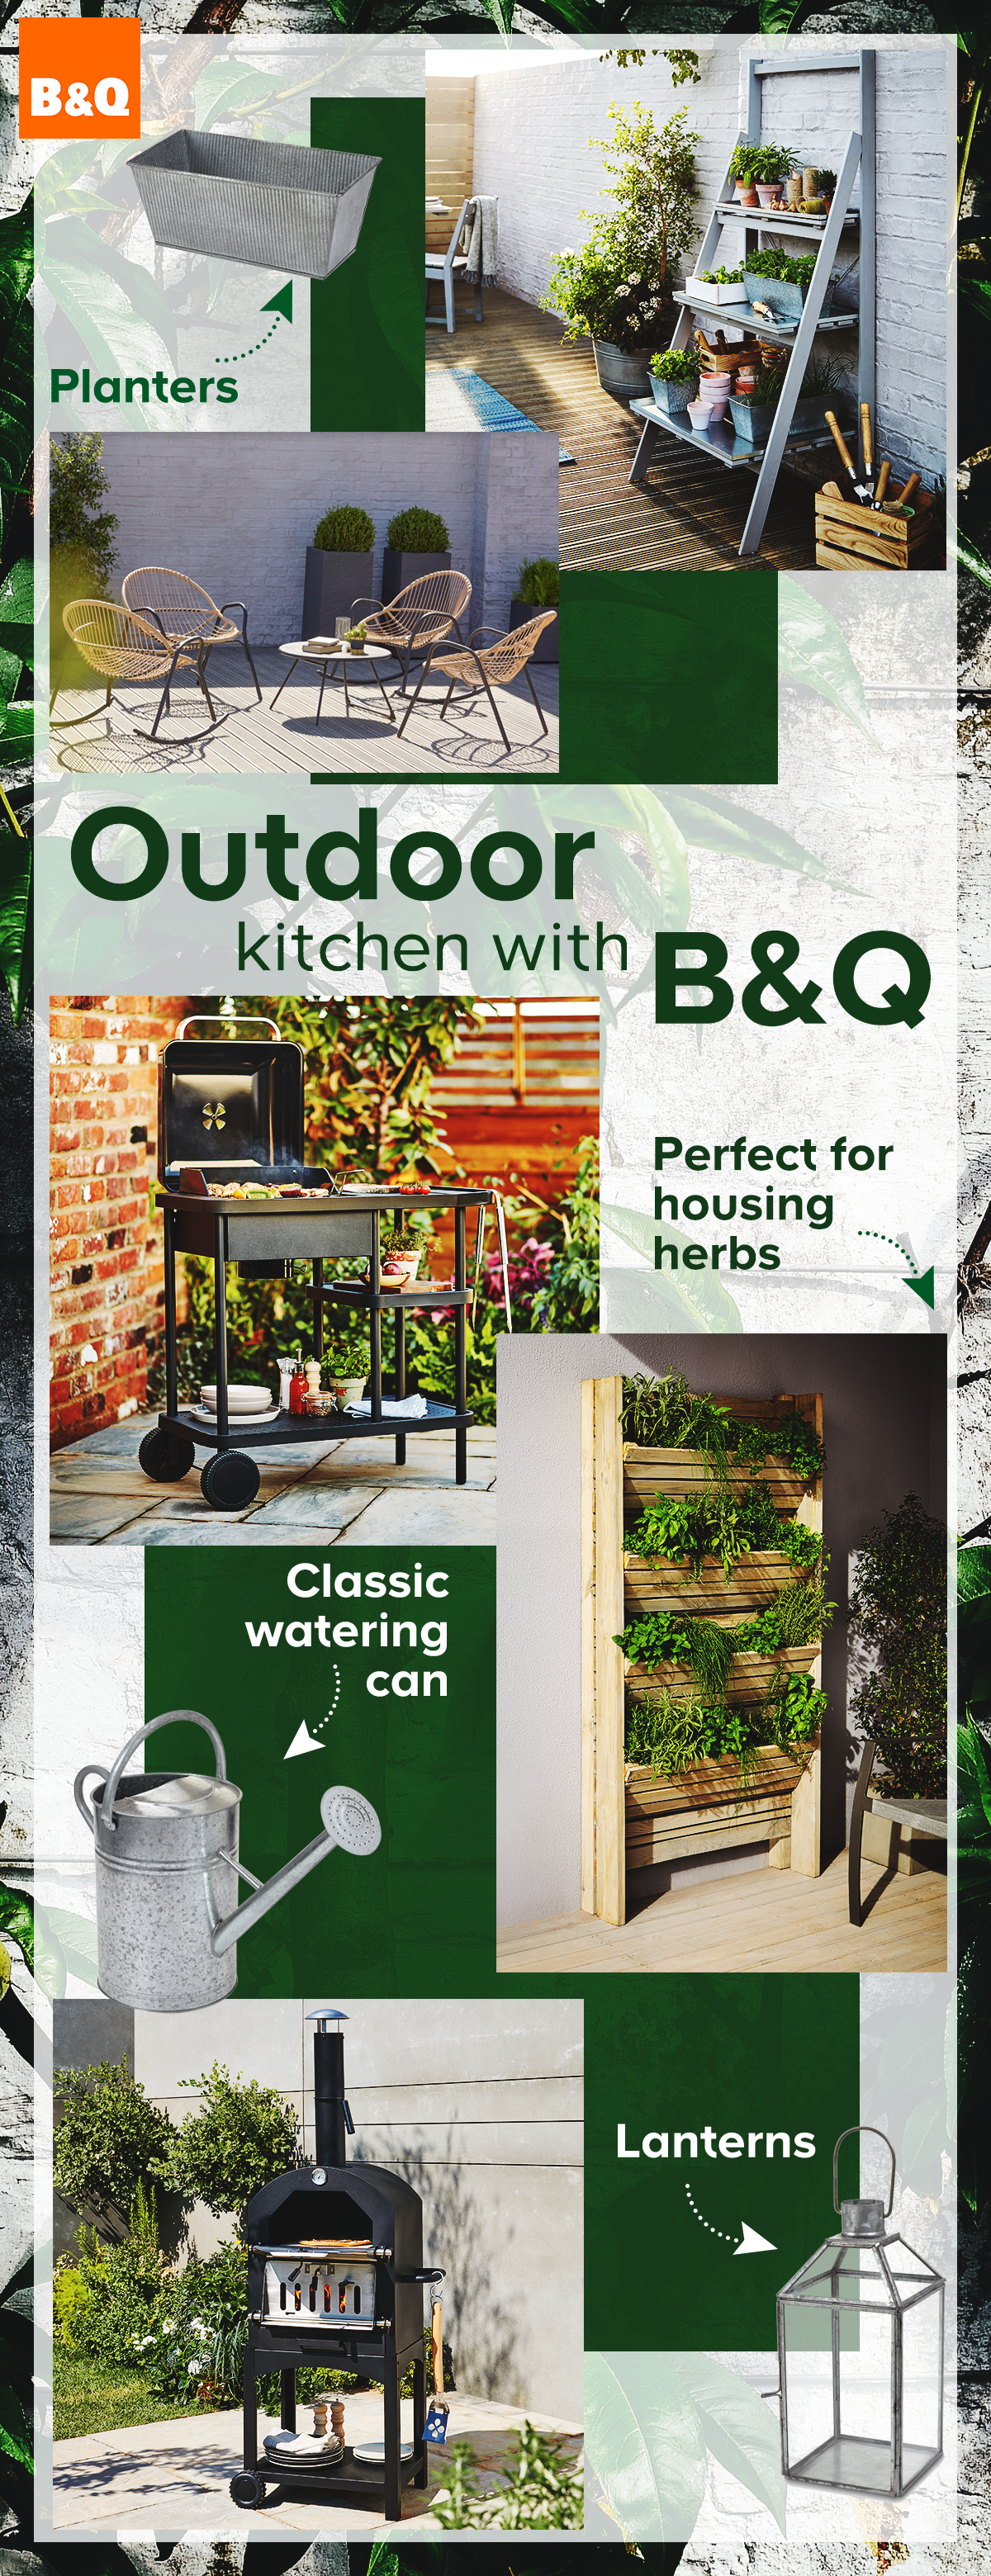 Create Your Perfect Outdoor Kitchen With B Q Whether It S Growing Your Own Herbs And Vegetables Dining Al Fresco With Our New Maipo P With Images Diy Garden Decor Outdoor